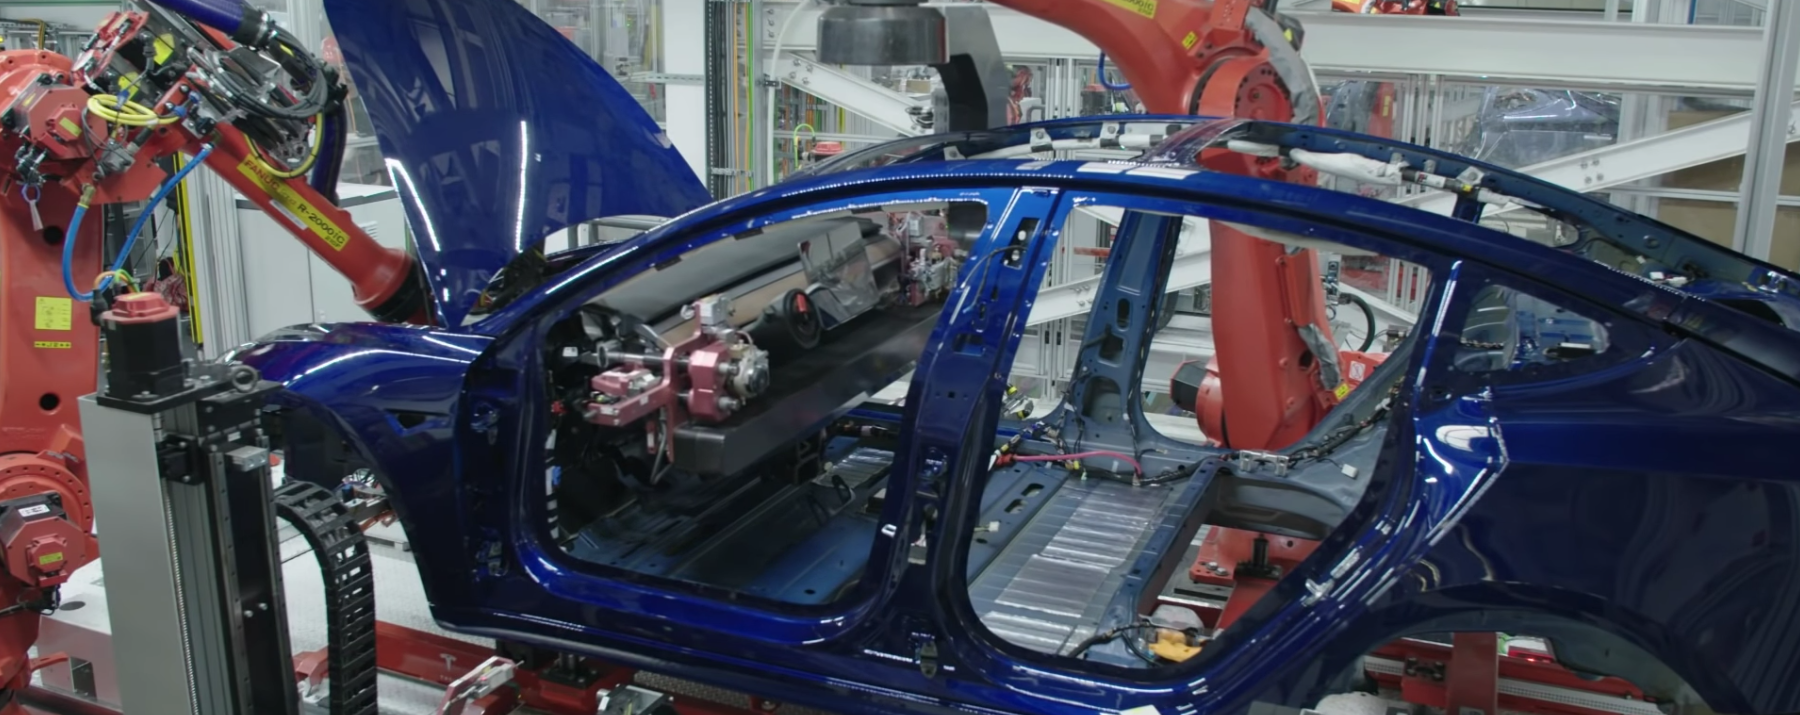 Tesla Model 3 Under Construction